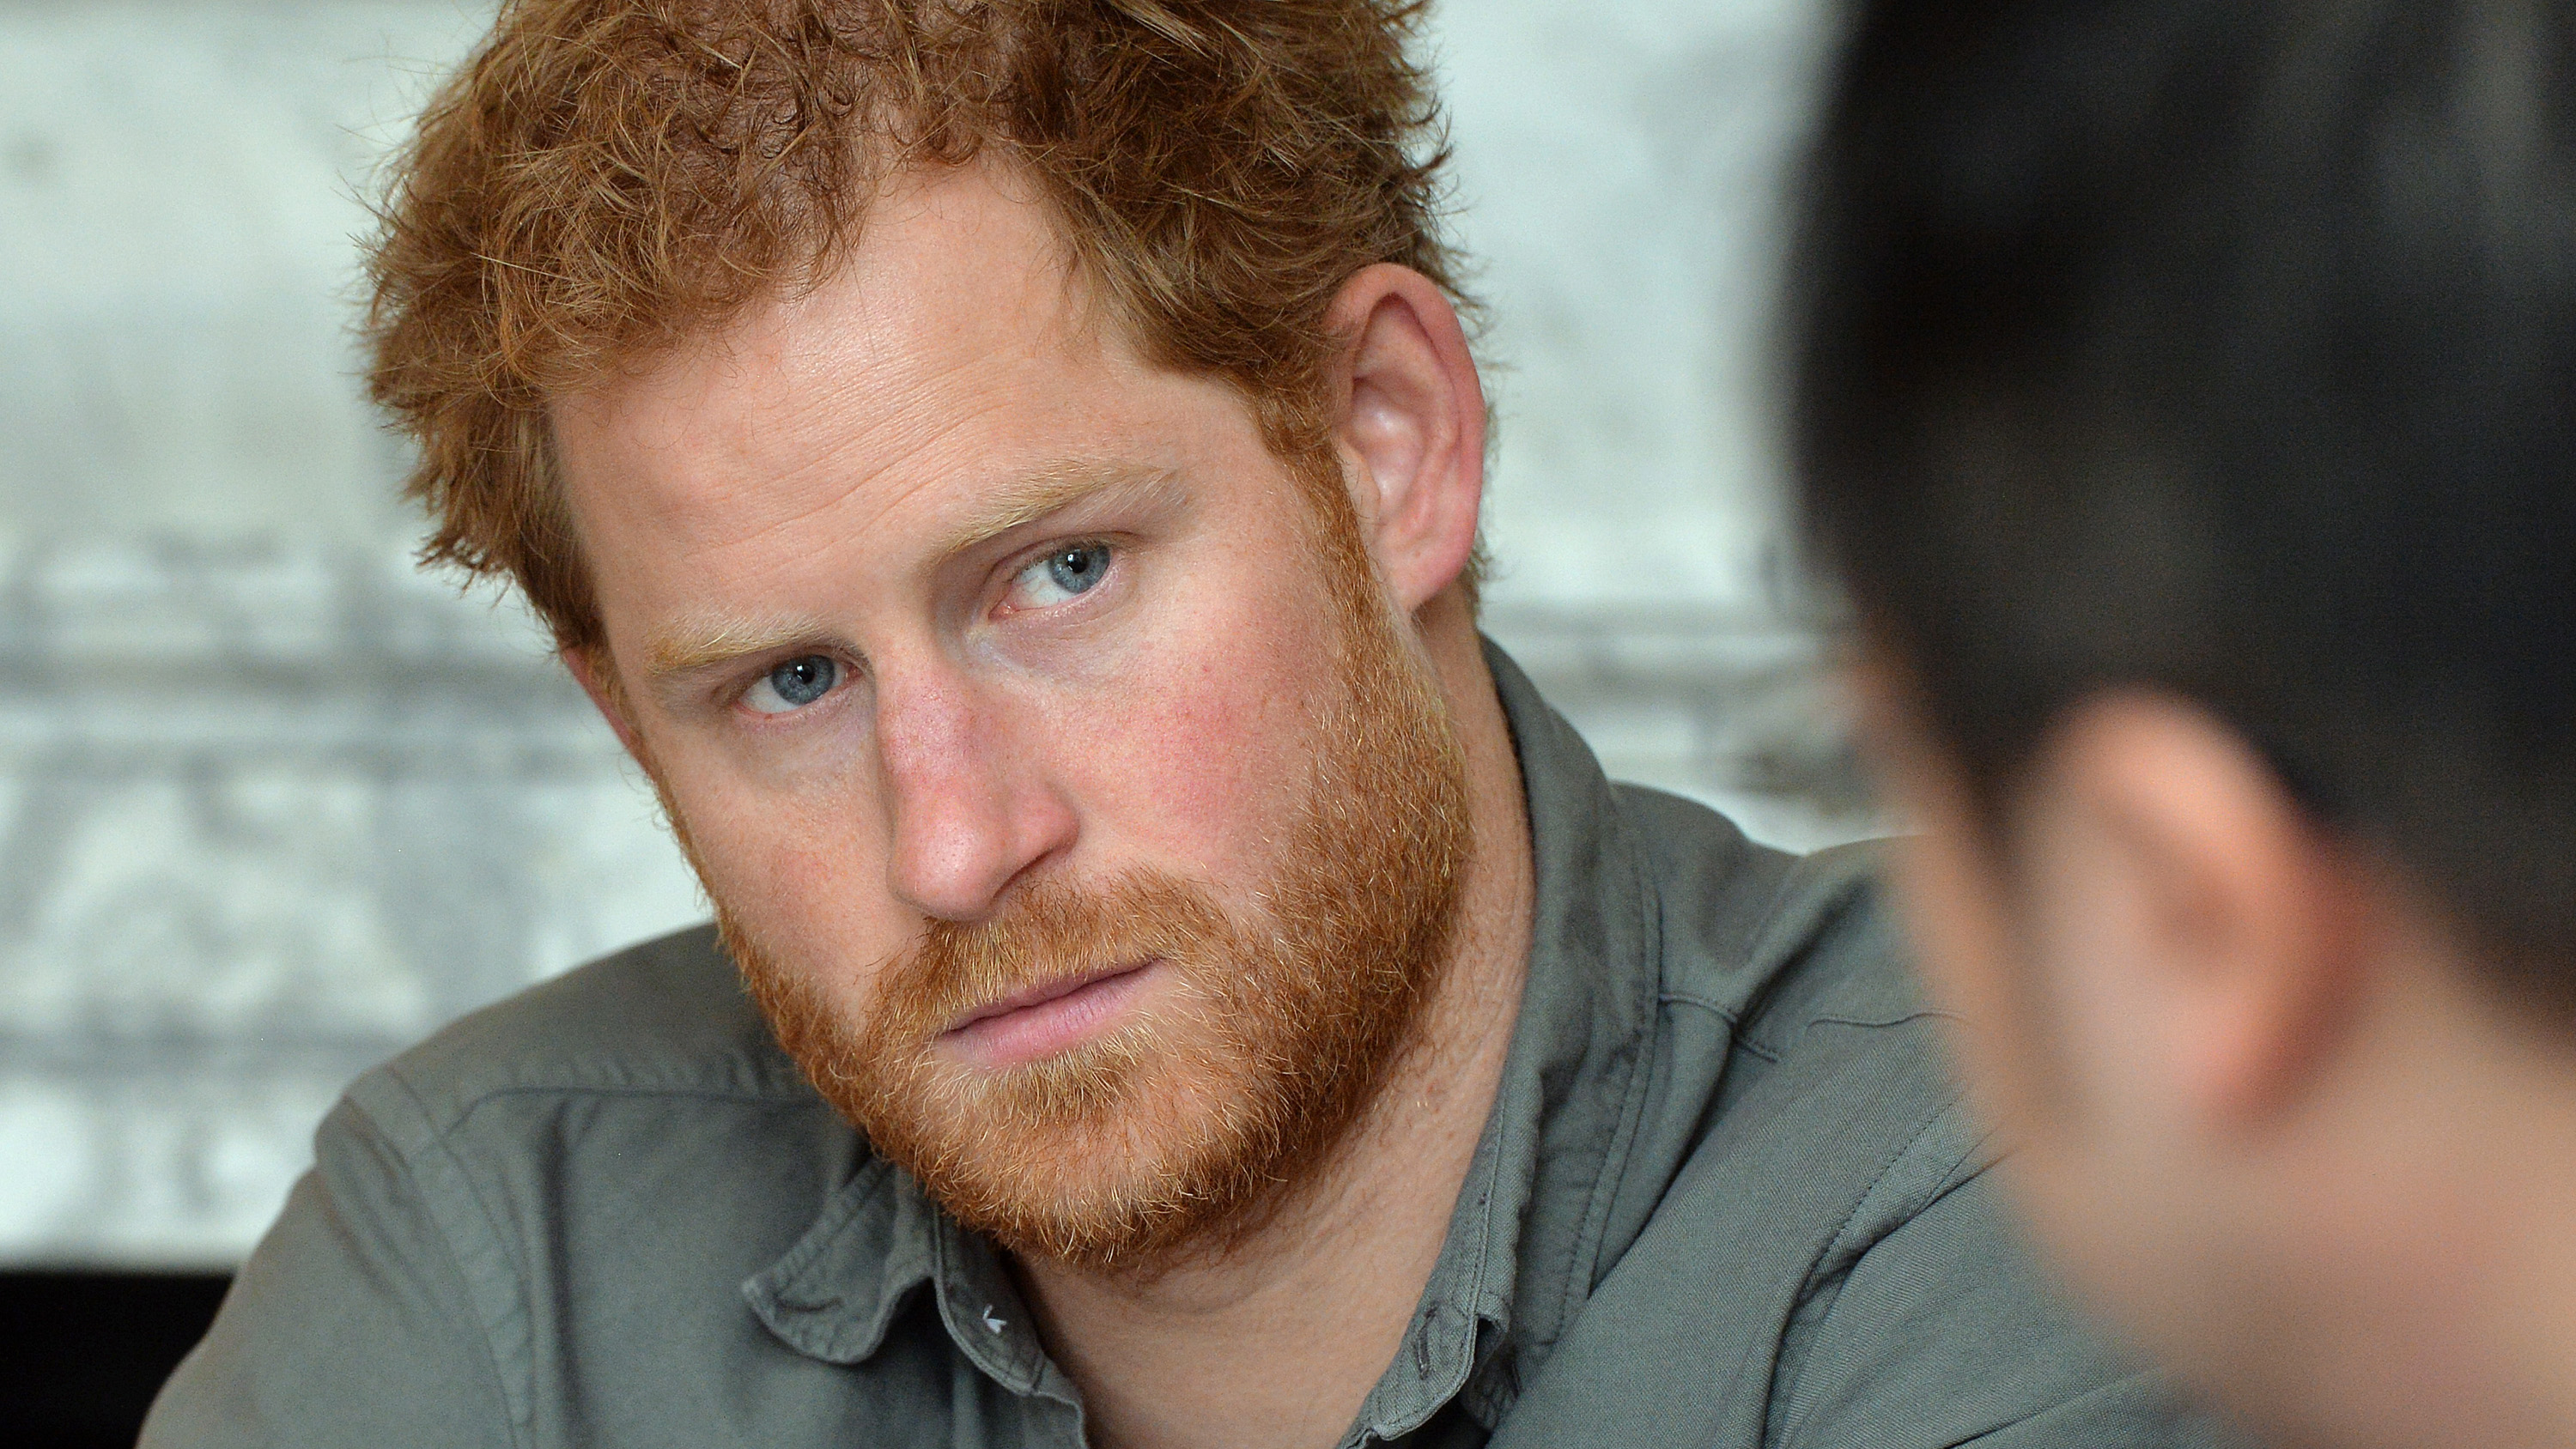 Prince Harry coming to Toronto with Invictus Games in 2017